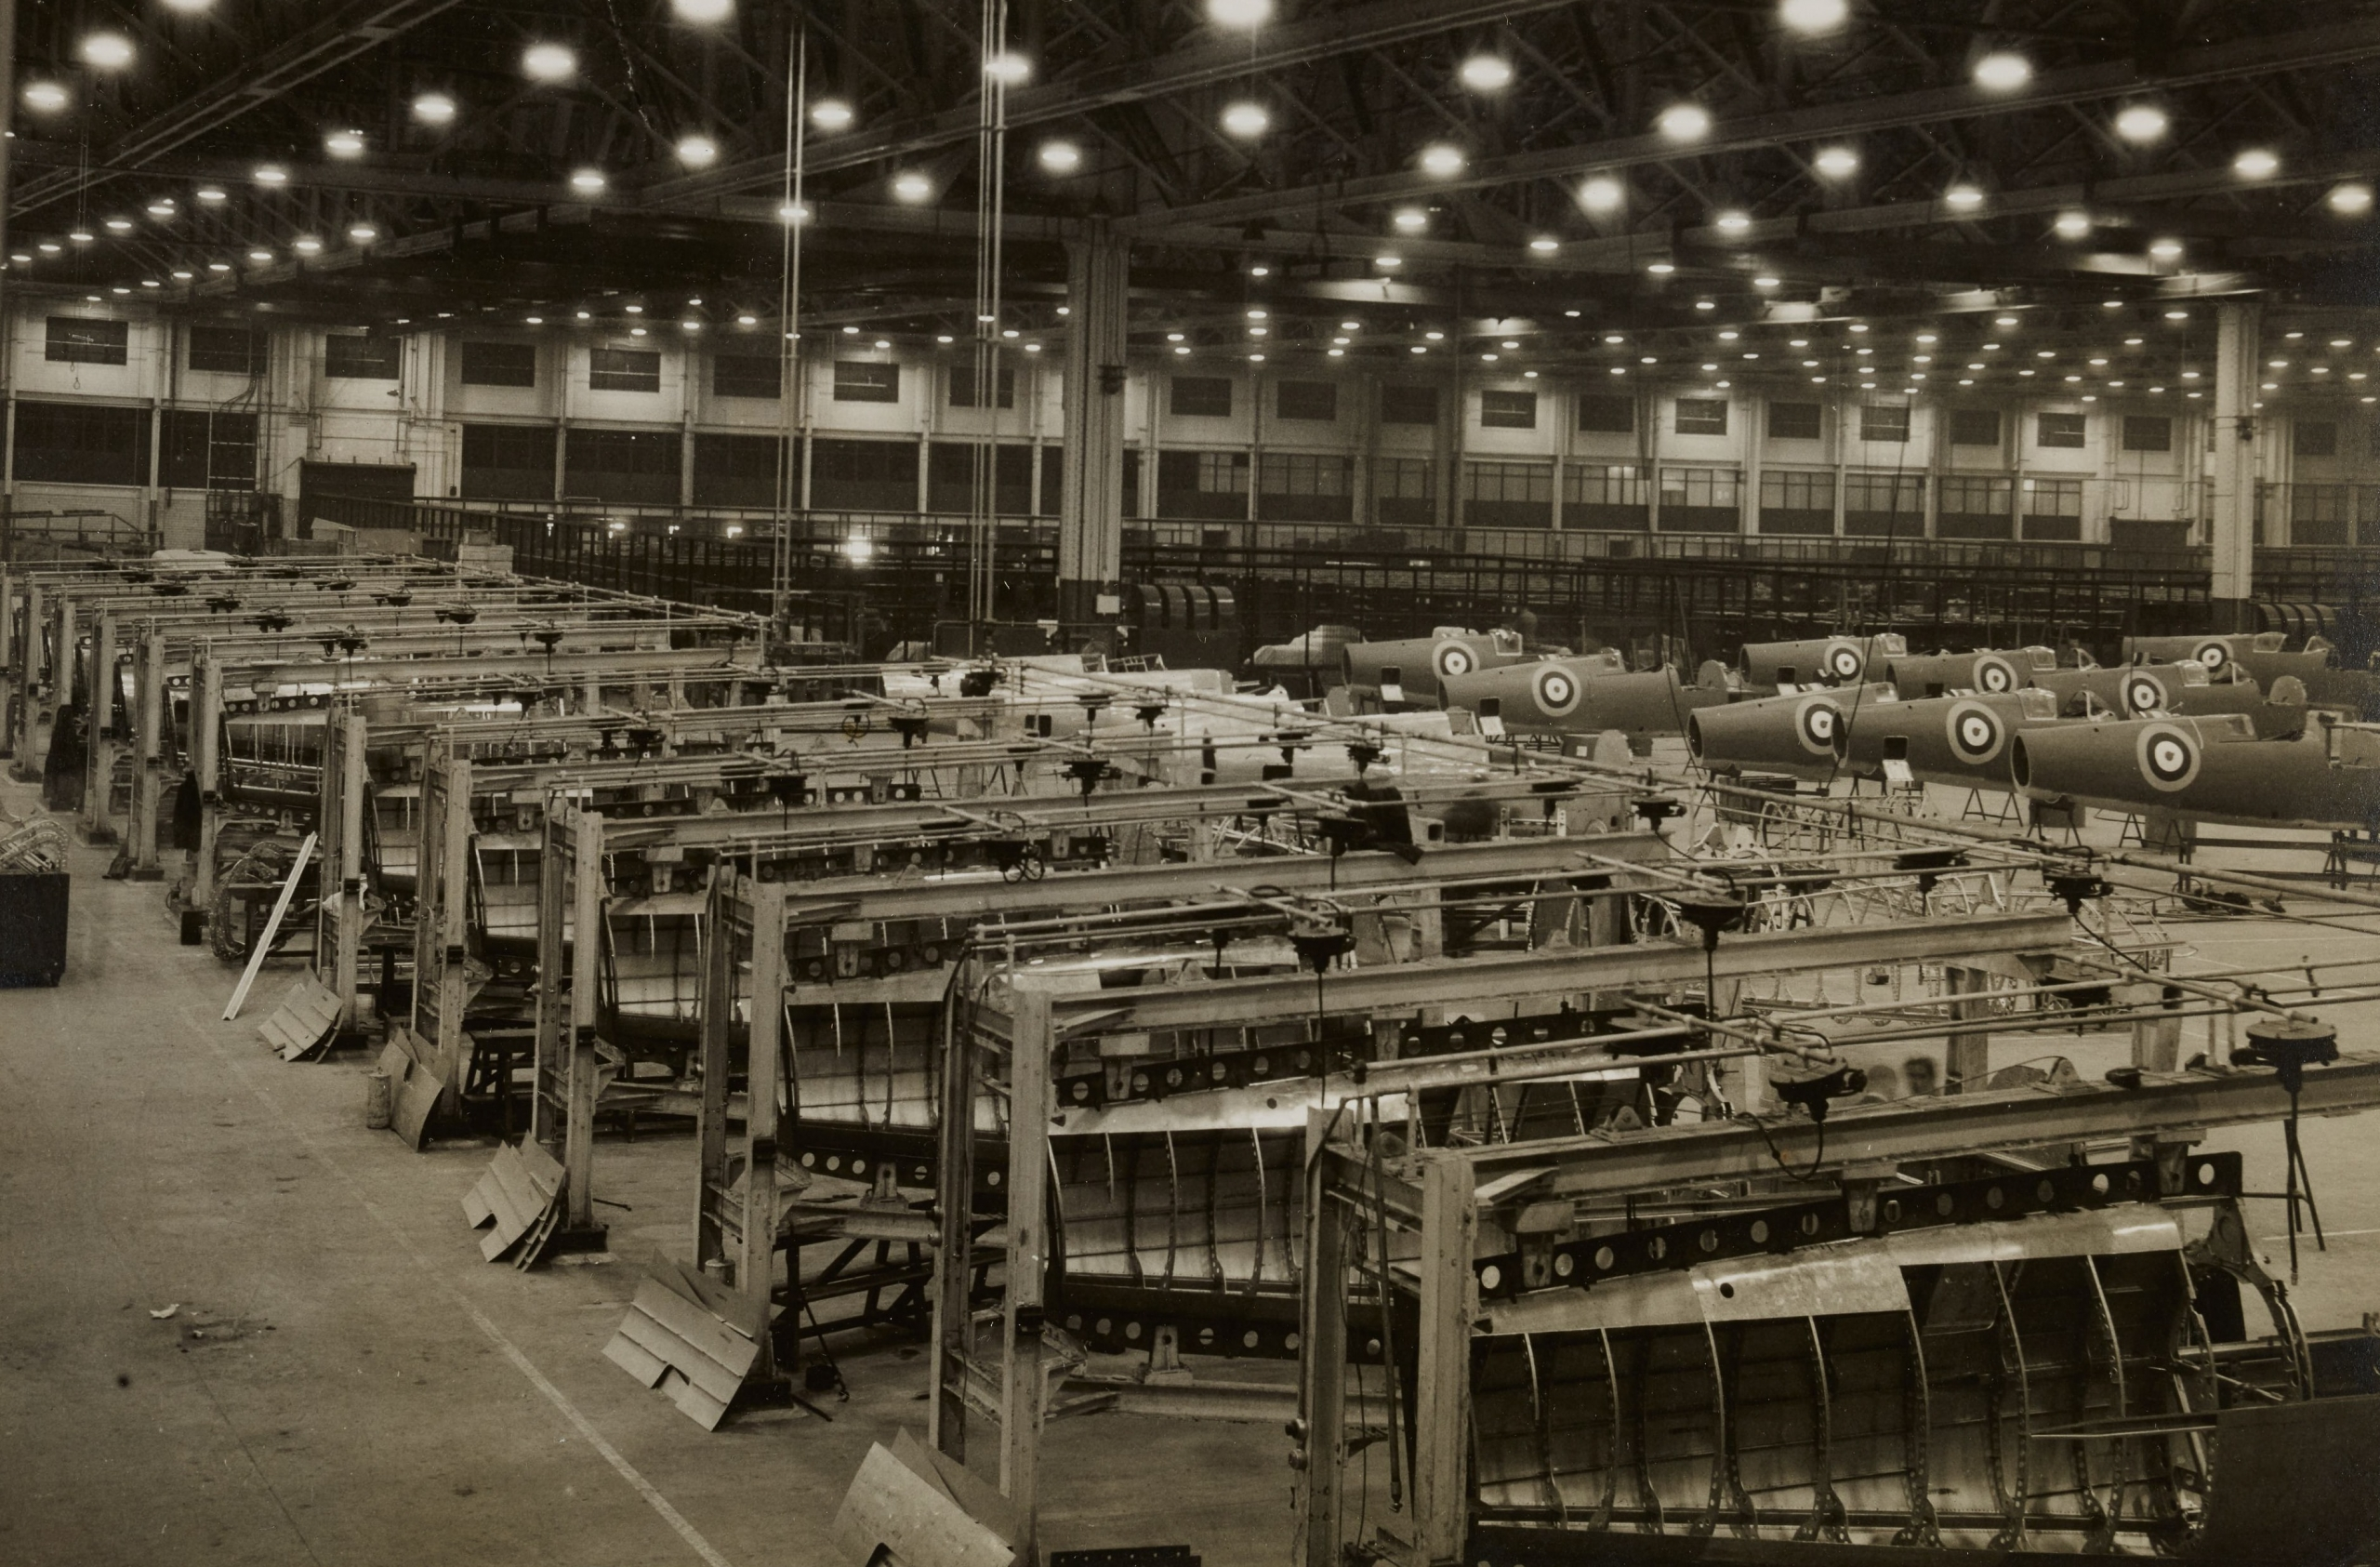 Old factory industrial manufacturing assembly line.